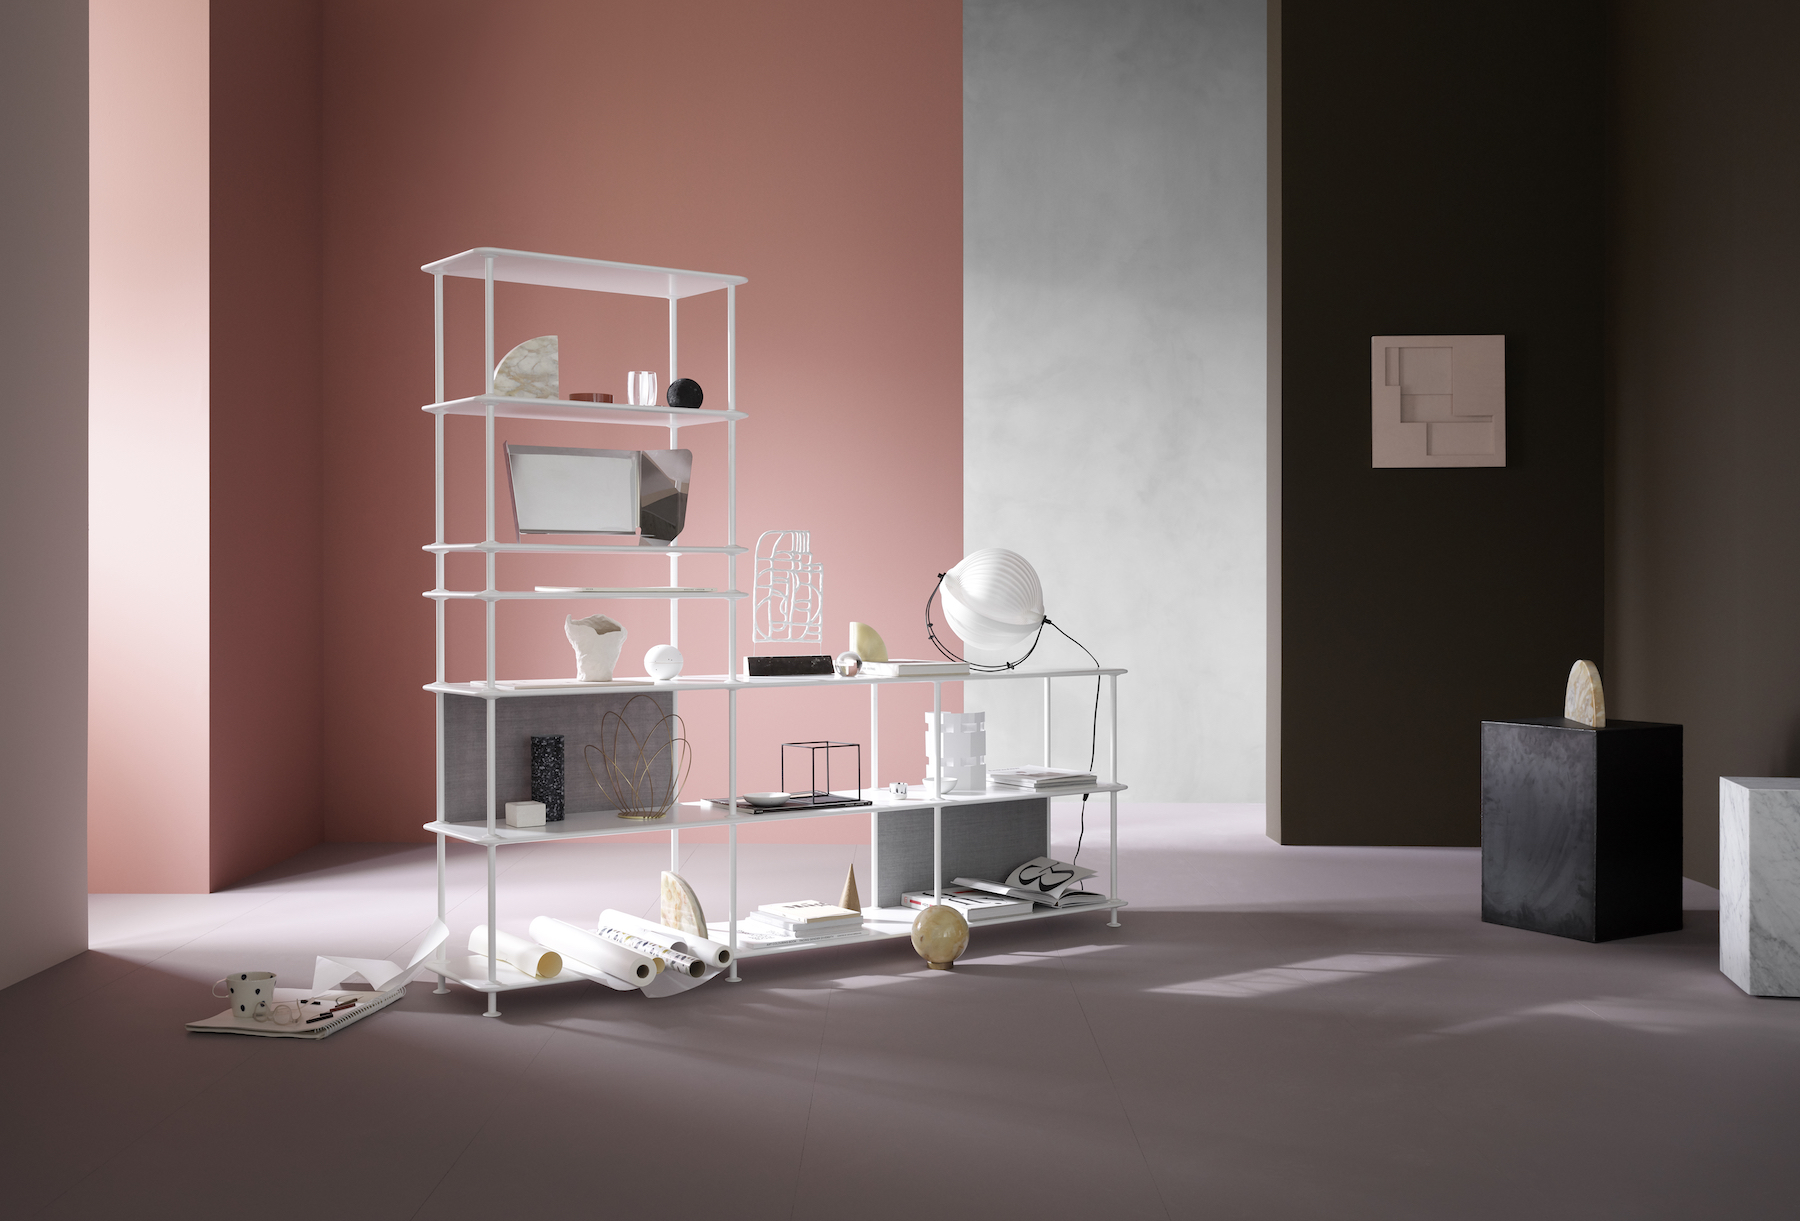 Montana Free Shelving ChinaRed, storage solutions, scandinavian design, interiors styling 6.jpg